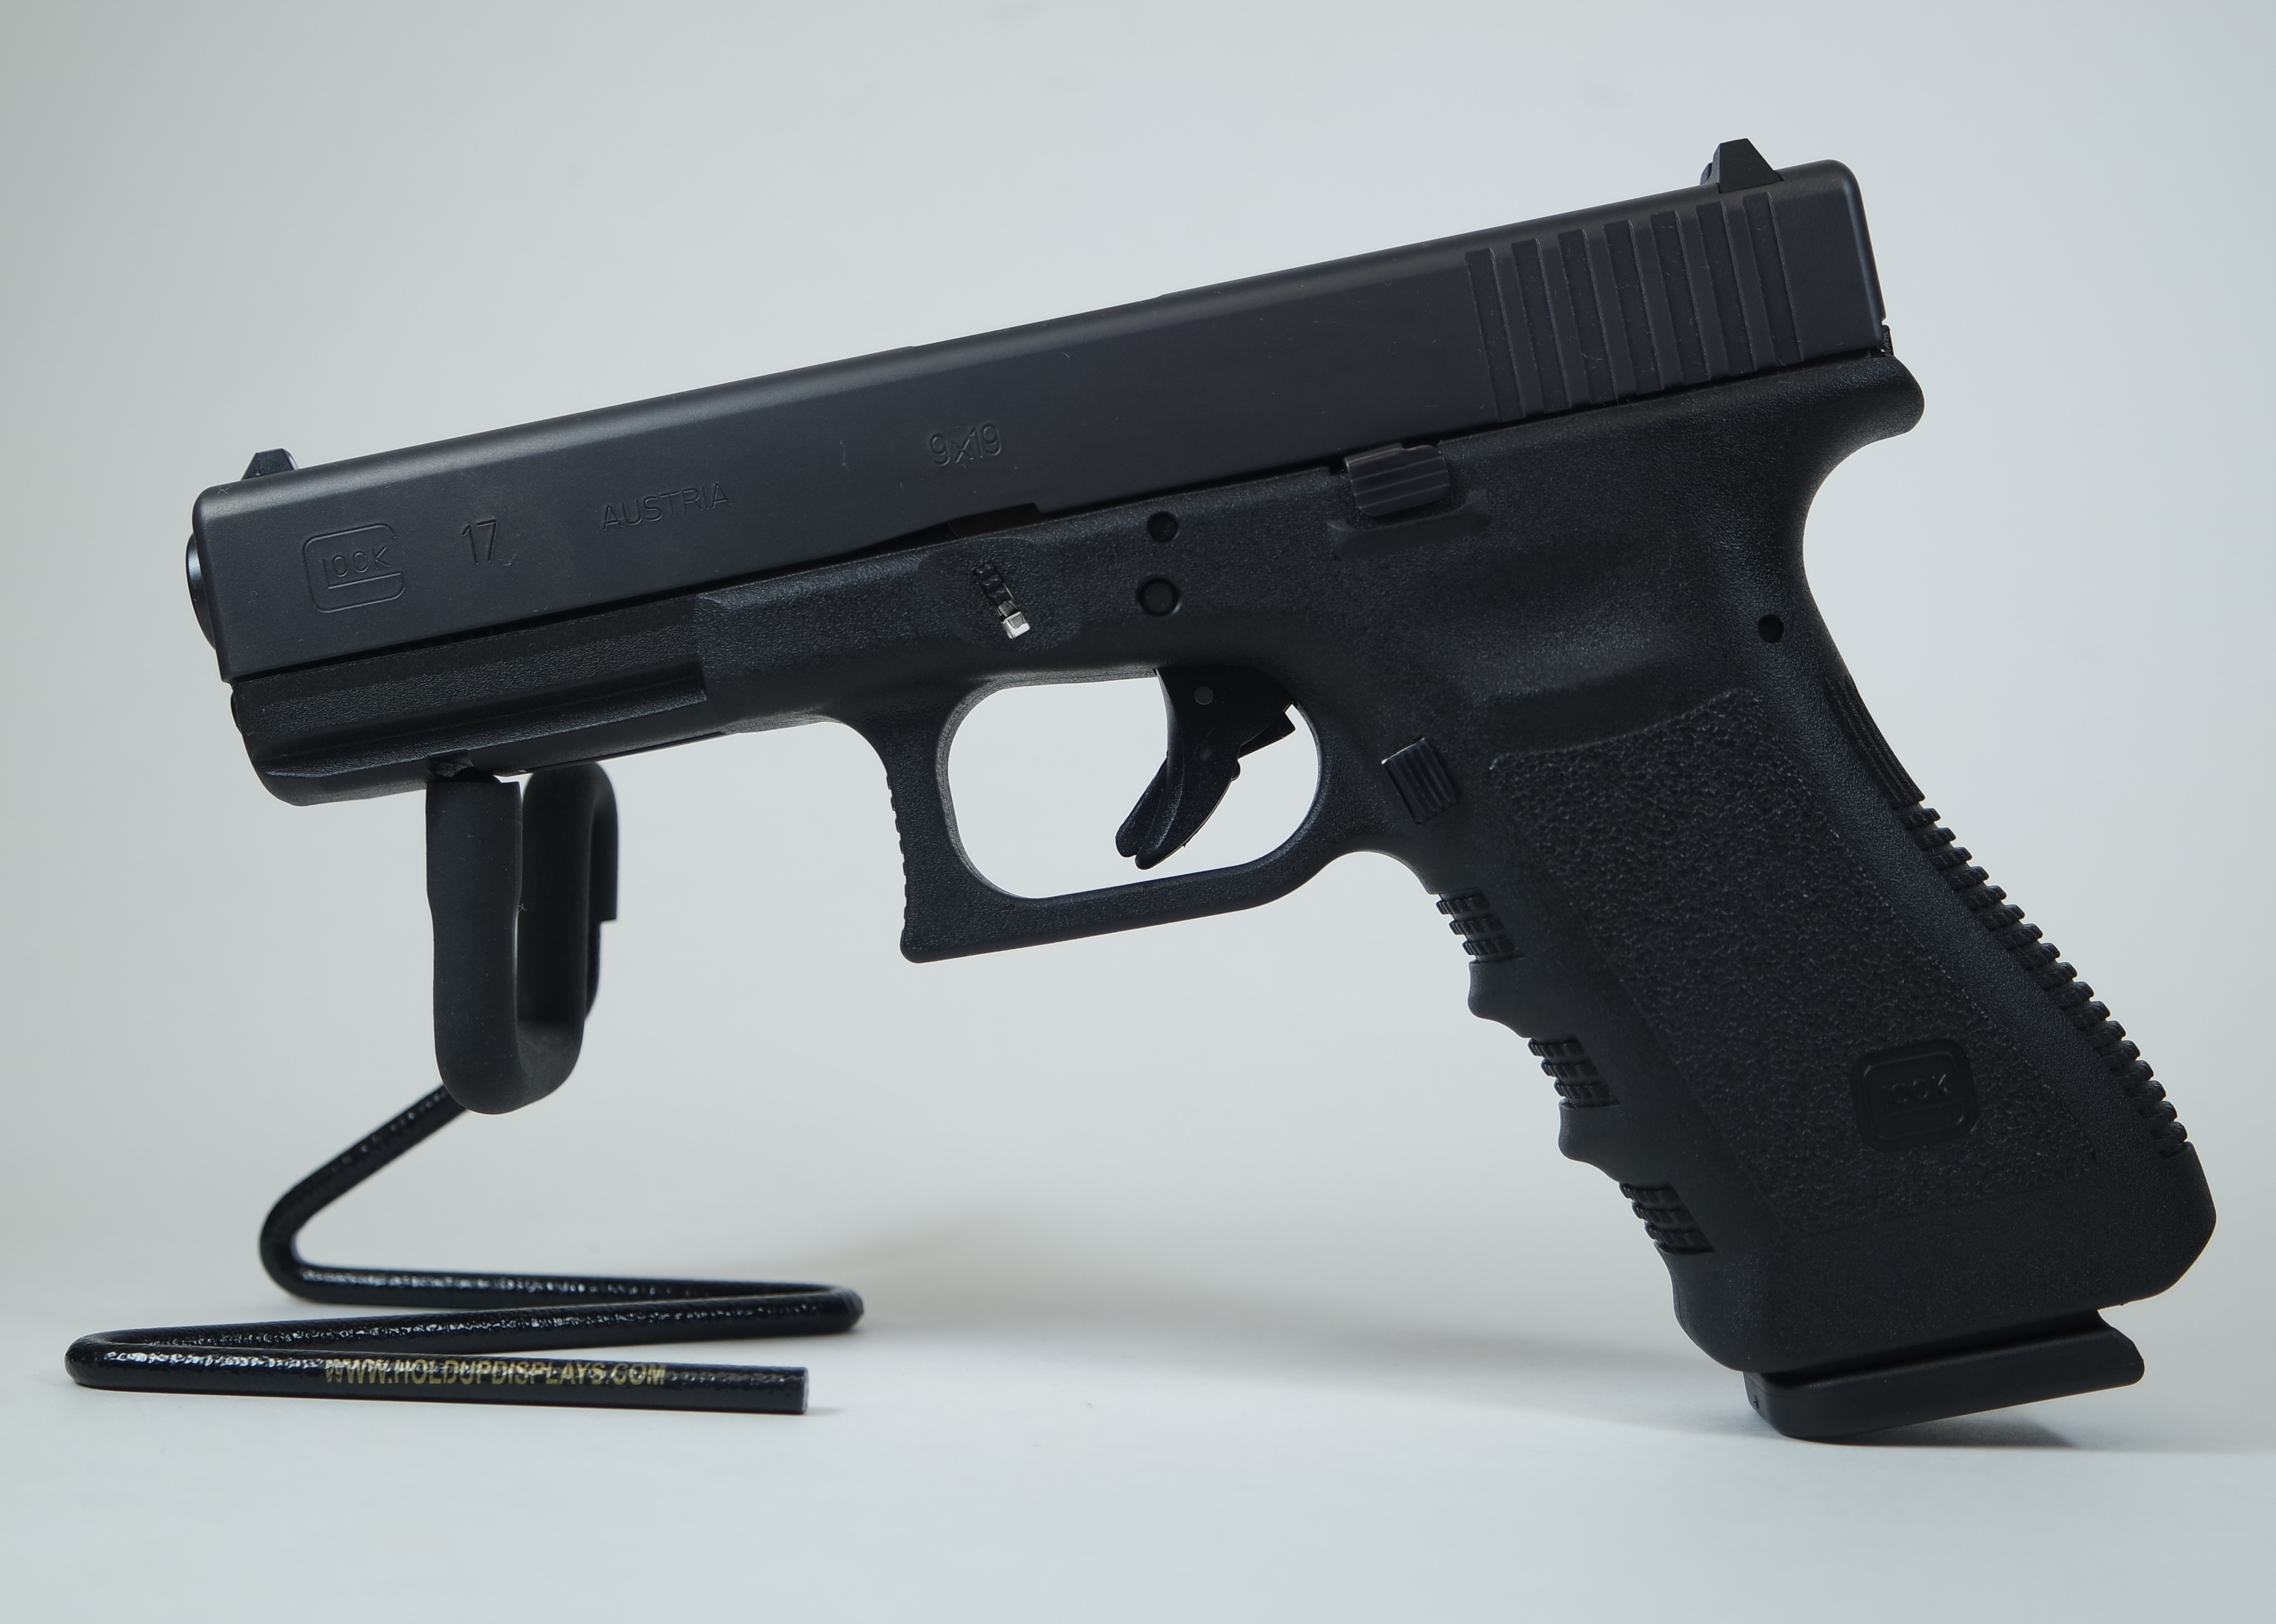 Glock 17 Gen3 Black 9mm 4.49-inch 17Rd FACTORY NEW